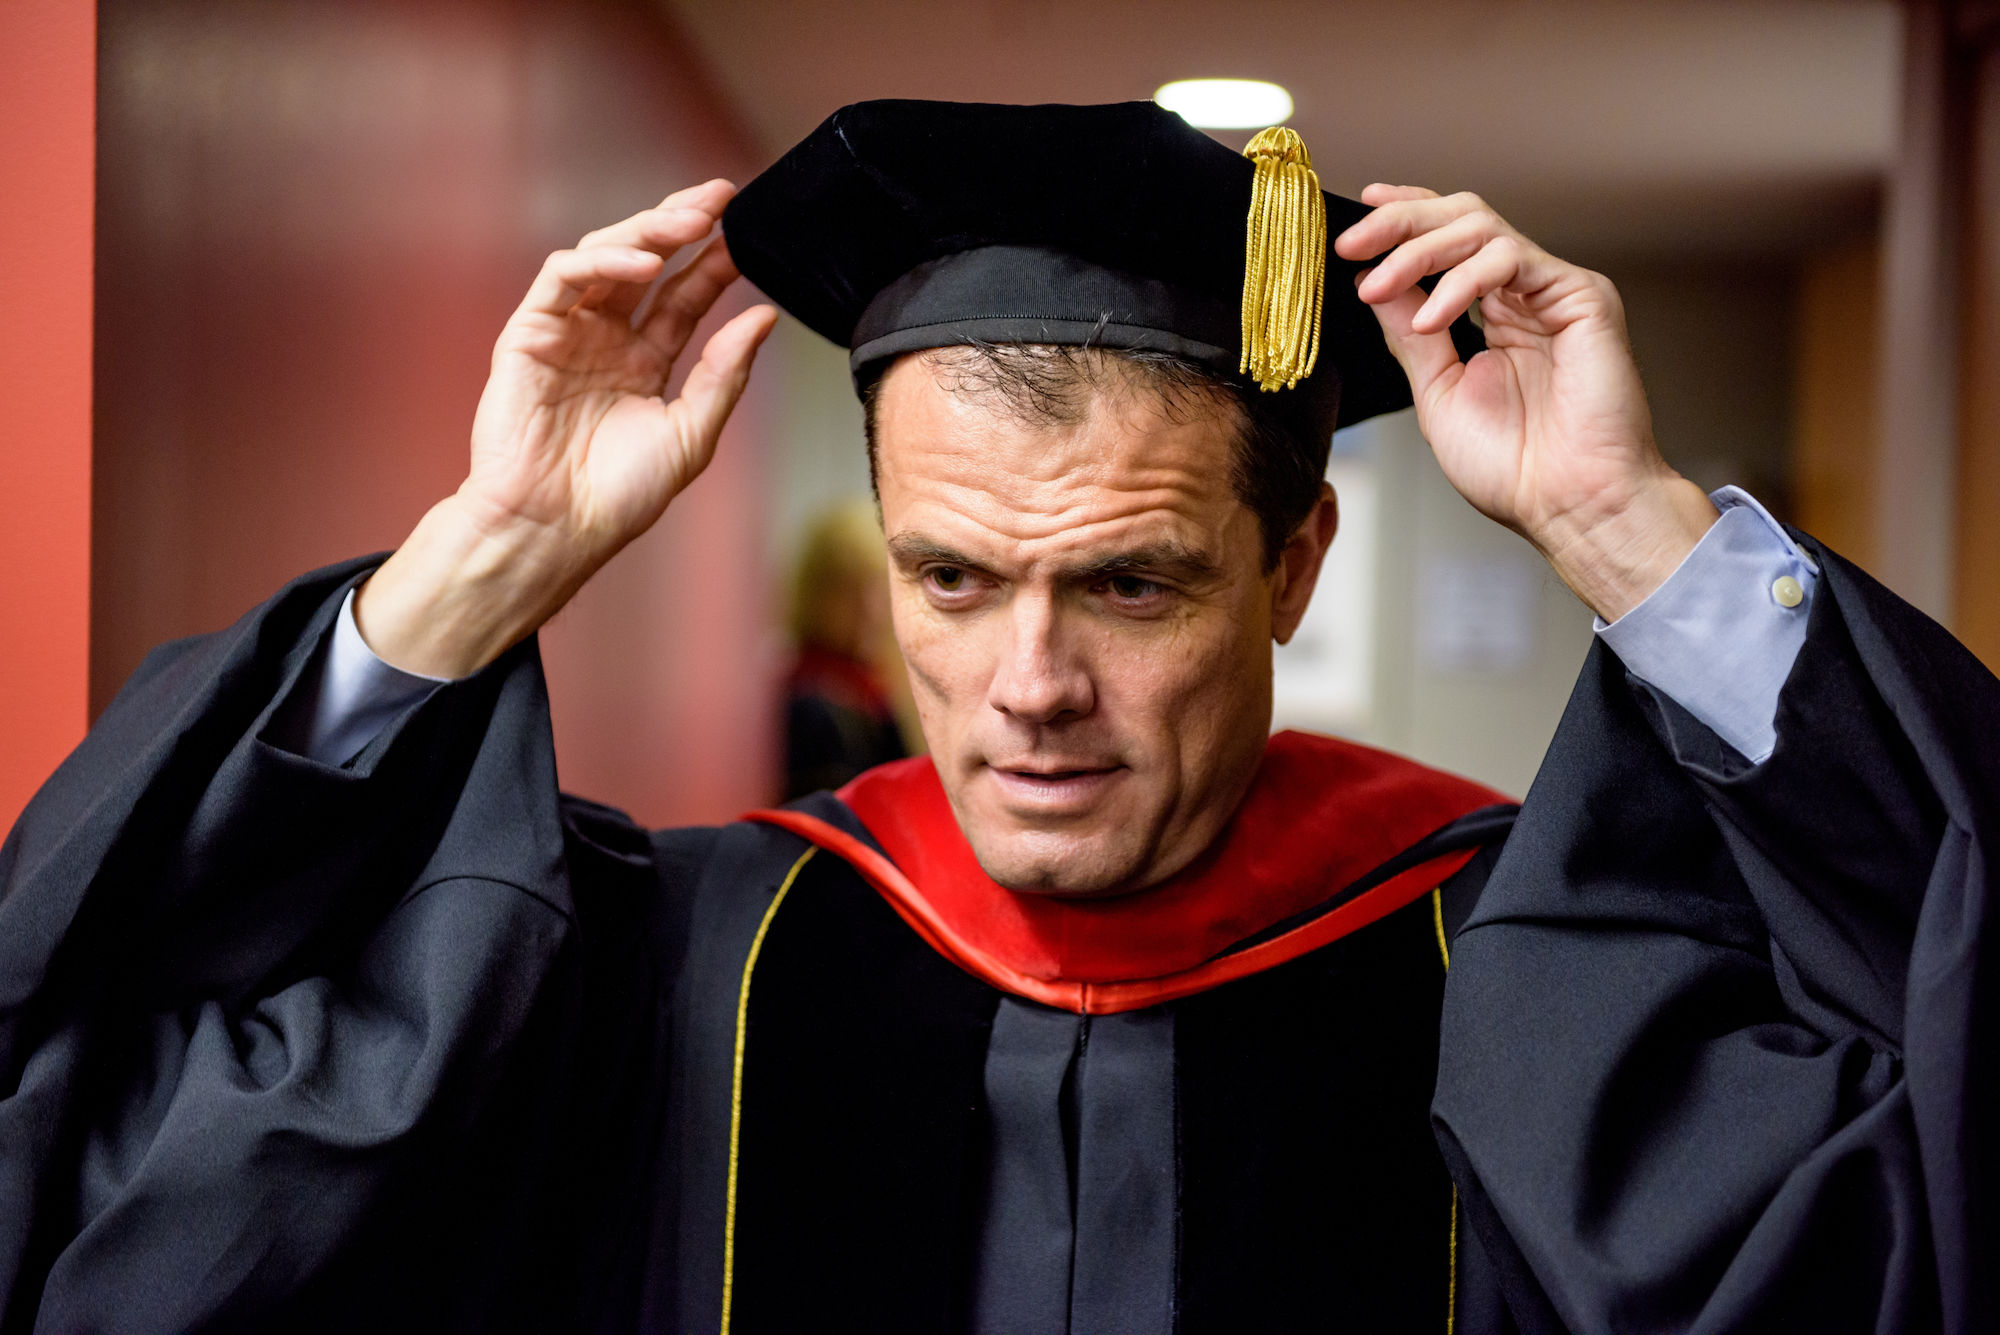 RHIT_Commencement_Platform_Party_Robing-21616.jpg